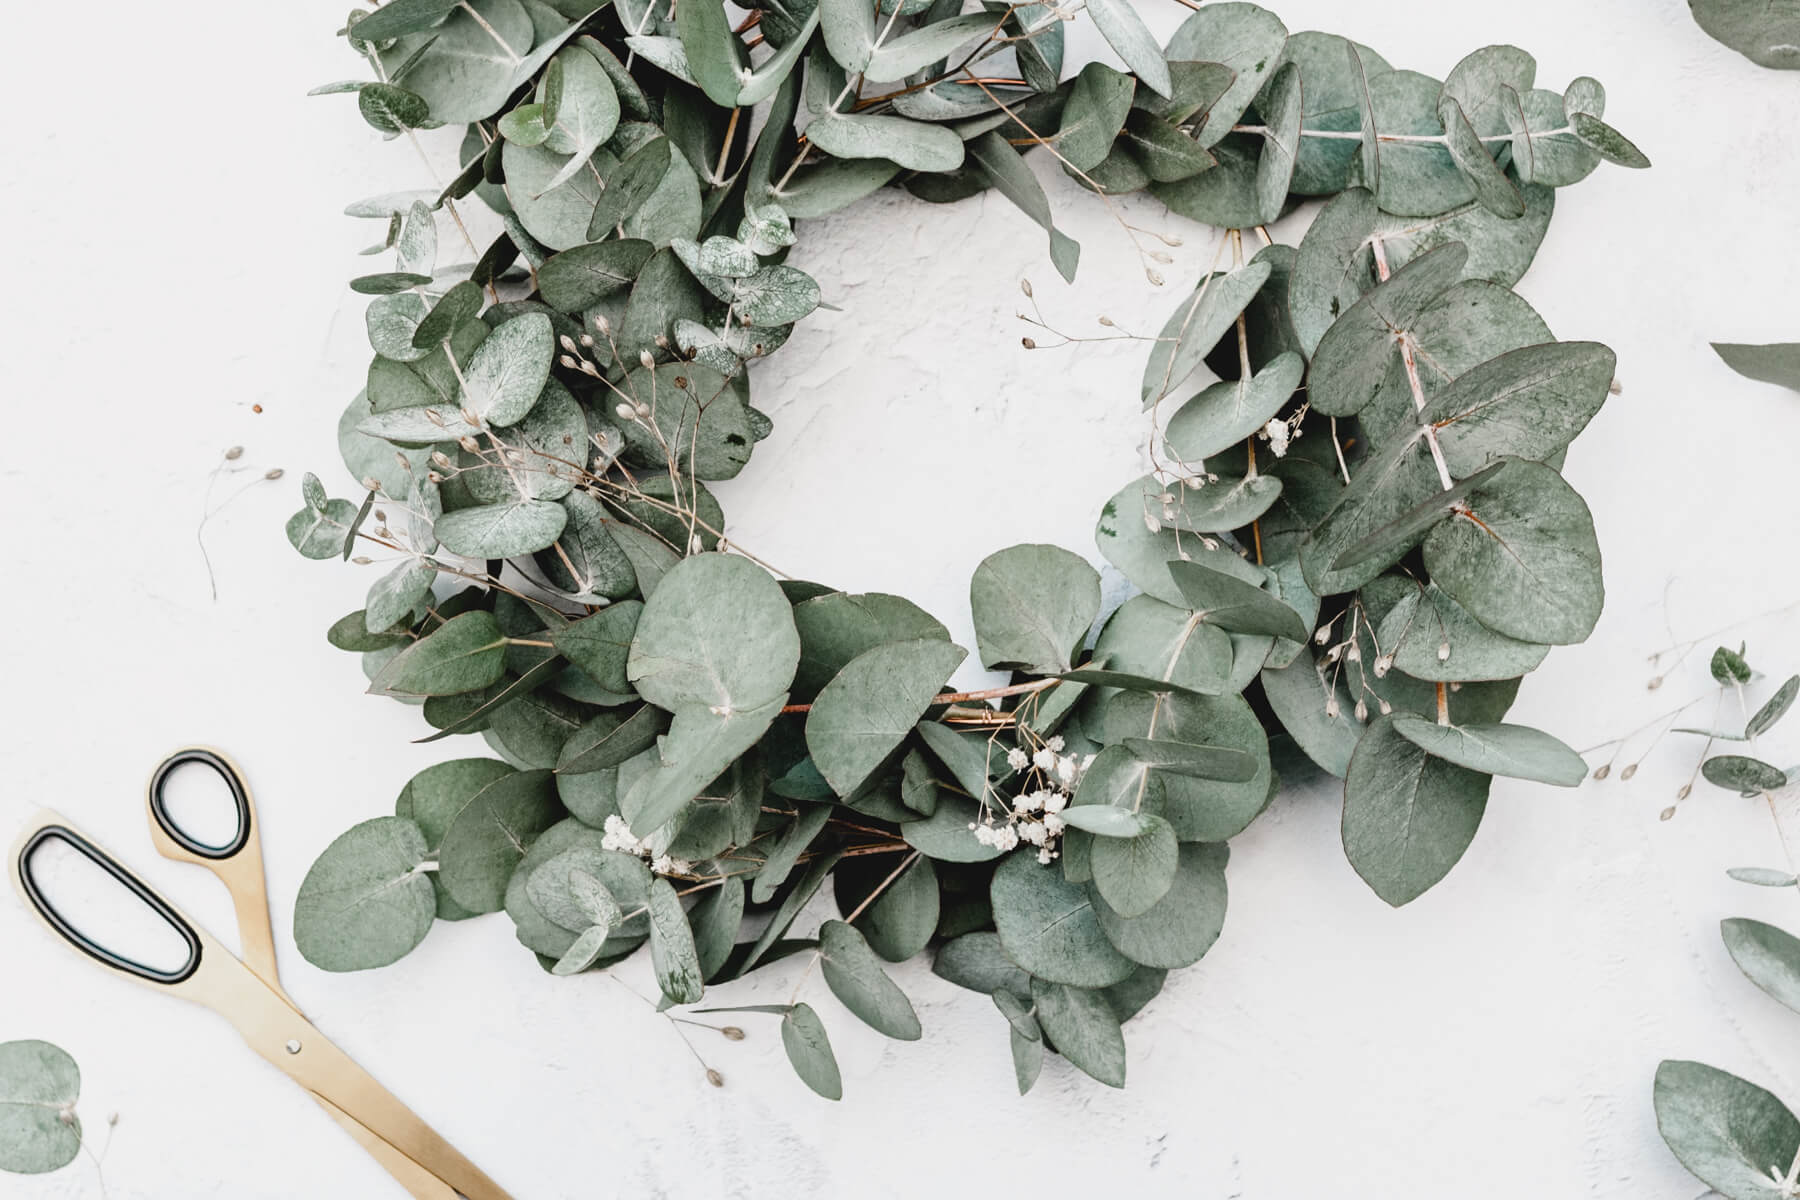 outdoor wreath-making parties are a great way to host covid Christmas safely featuring an image of a eucalyptus wreath